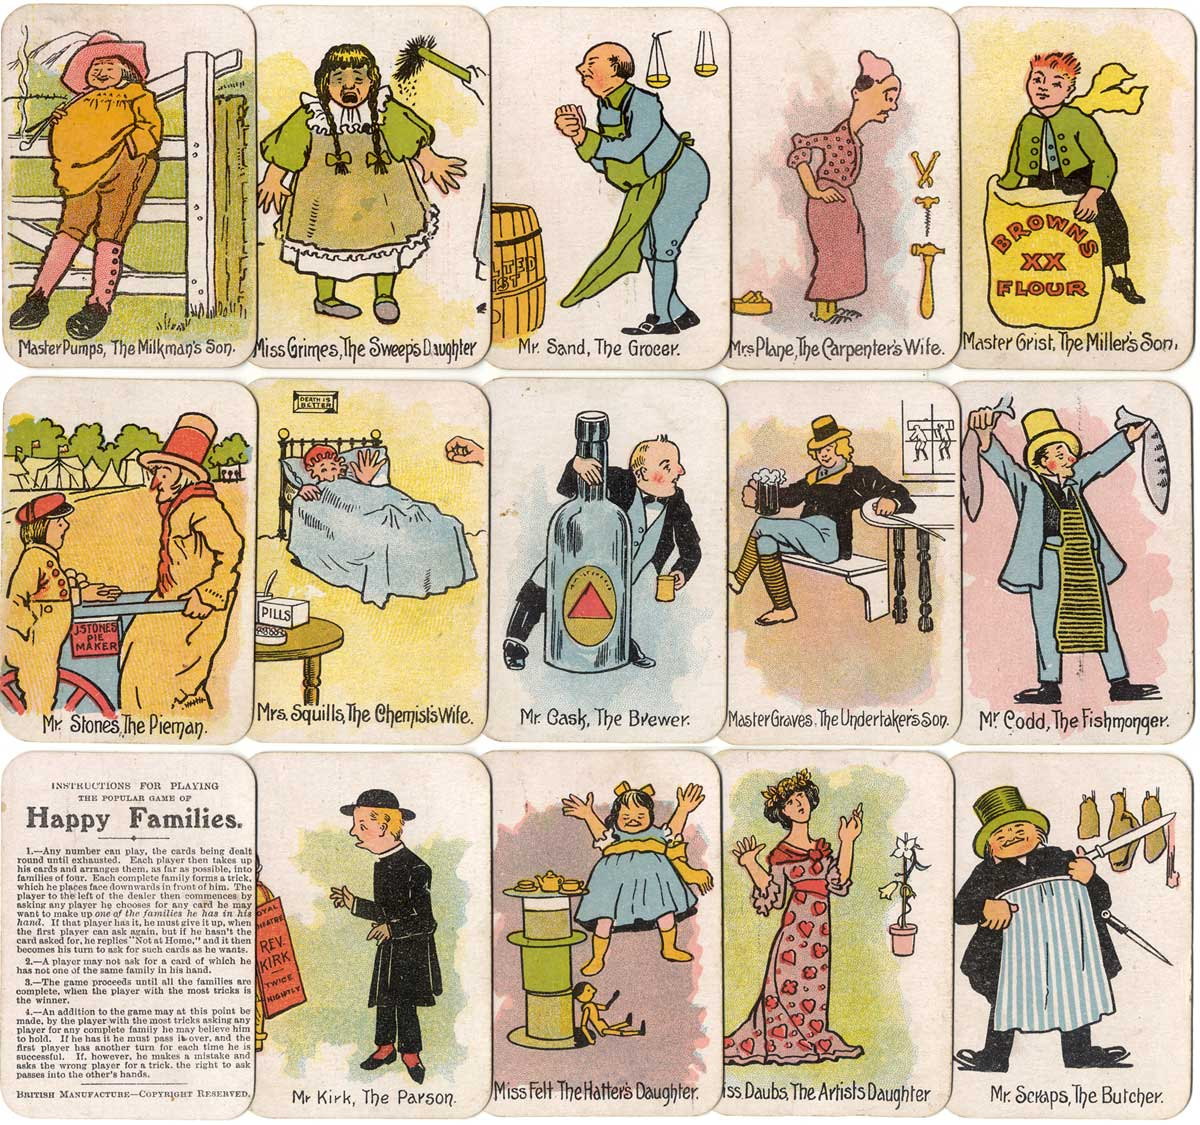 The Round Card Game of Happy Families, published by Chad Valley Games, England 1910